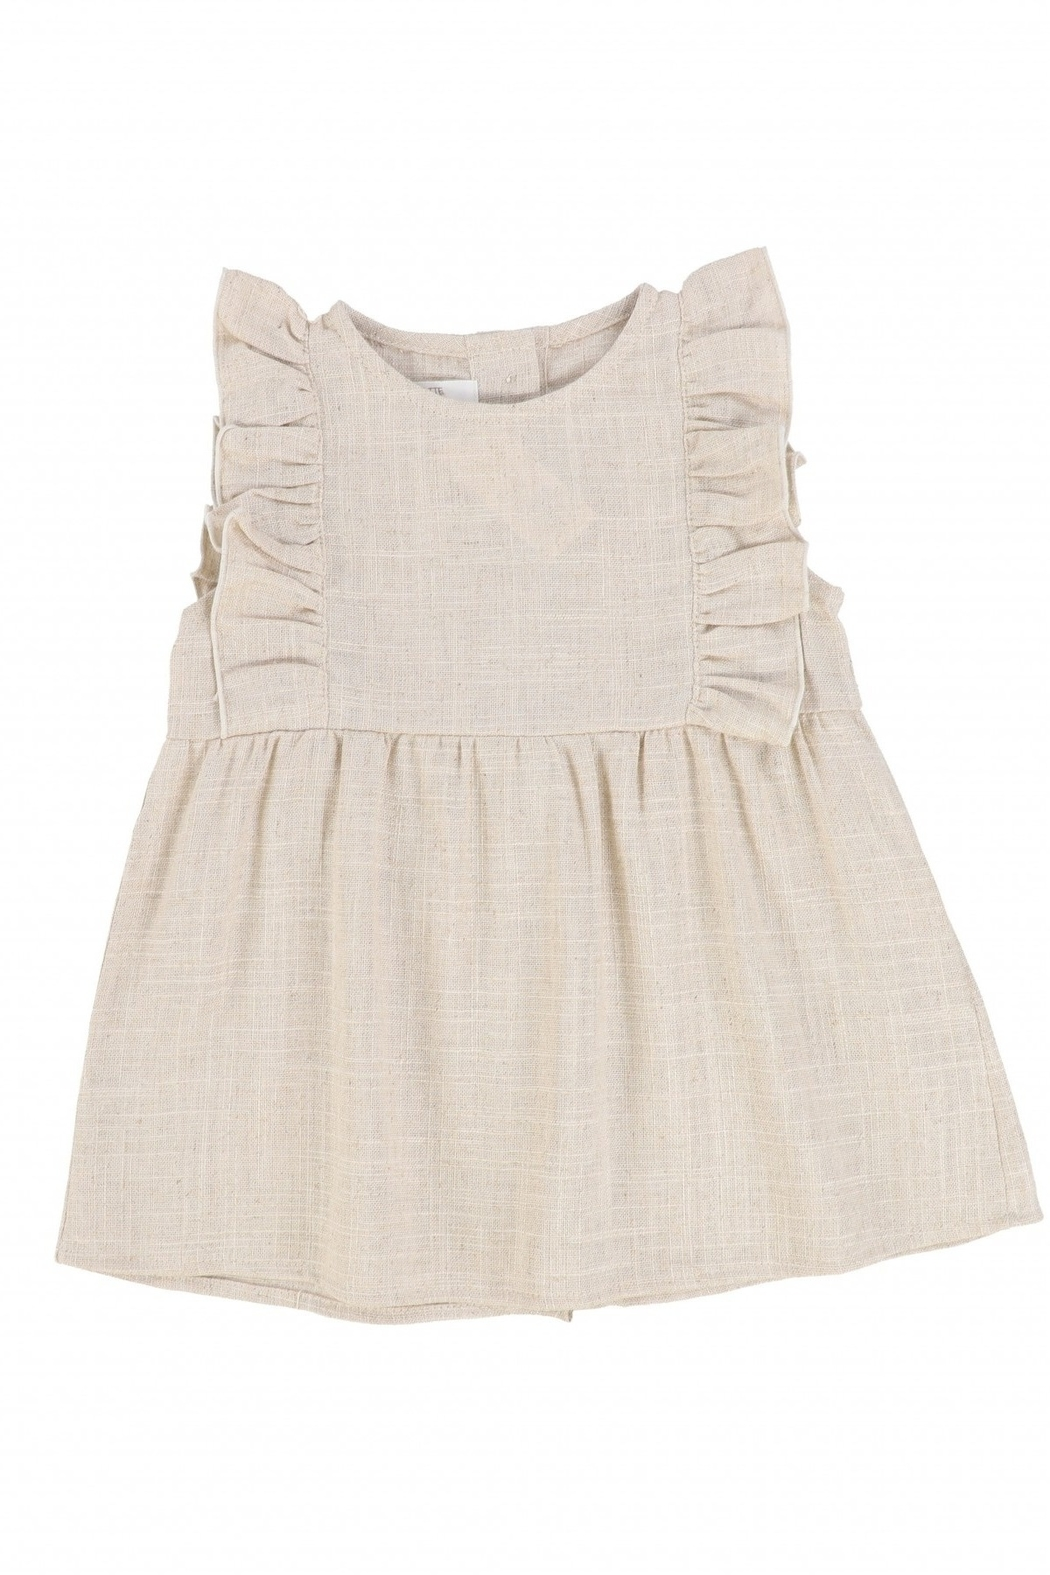 Latte Baby and Child | Girls' Ruffled metallic jumper - Main Image